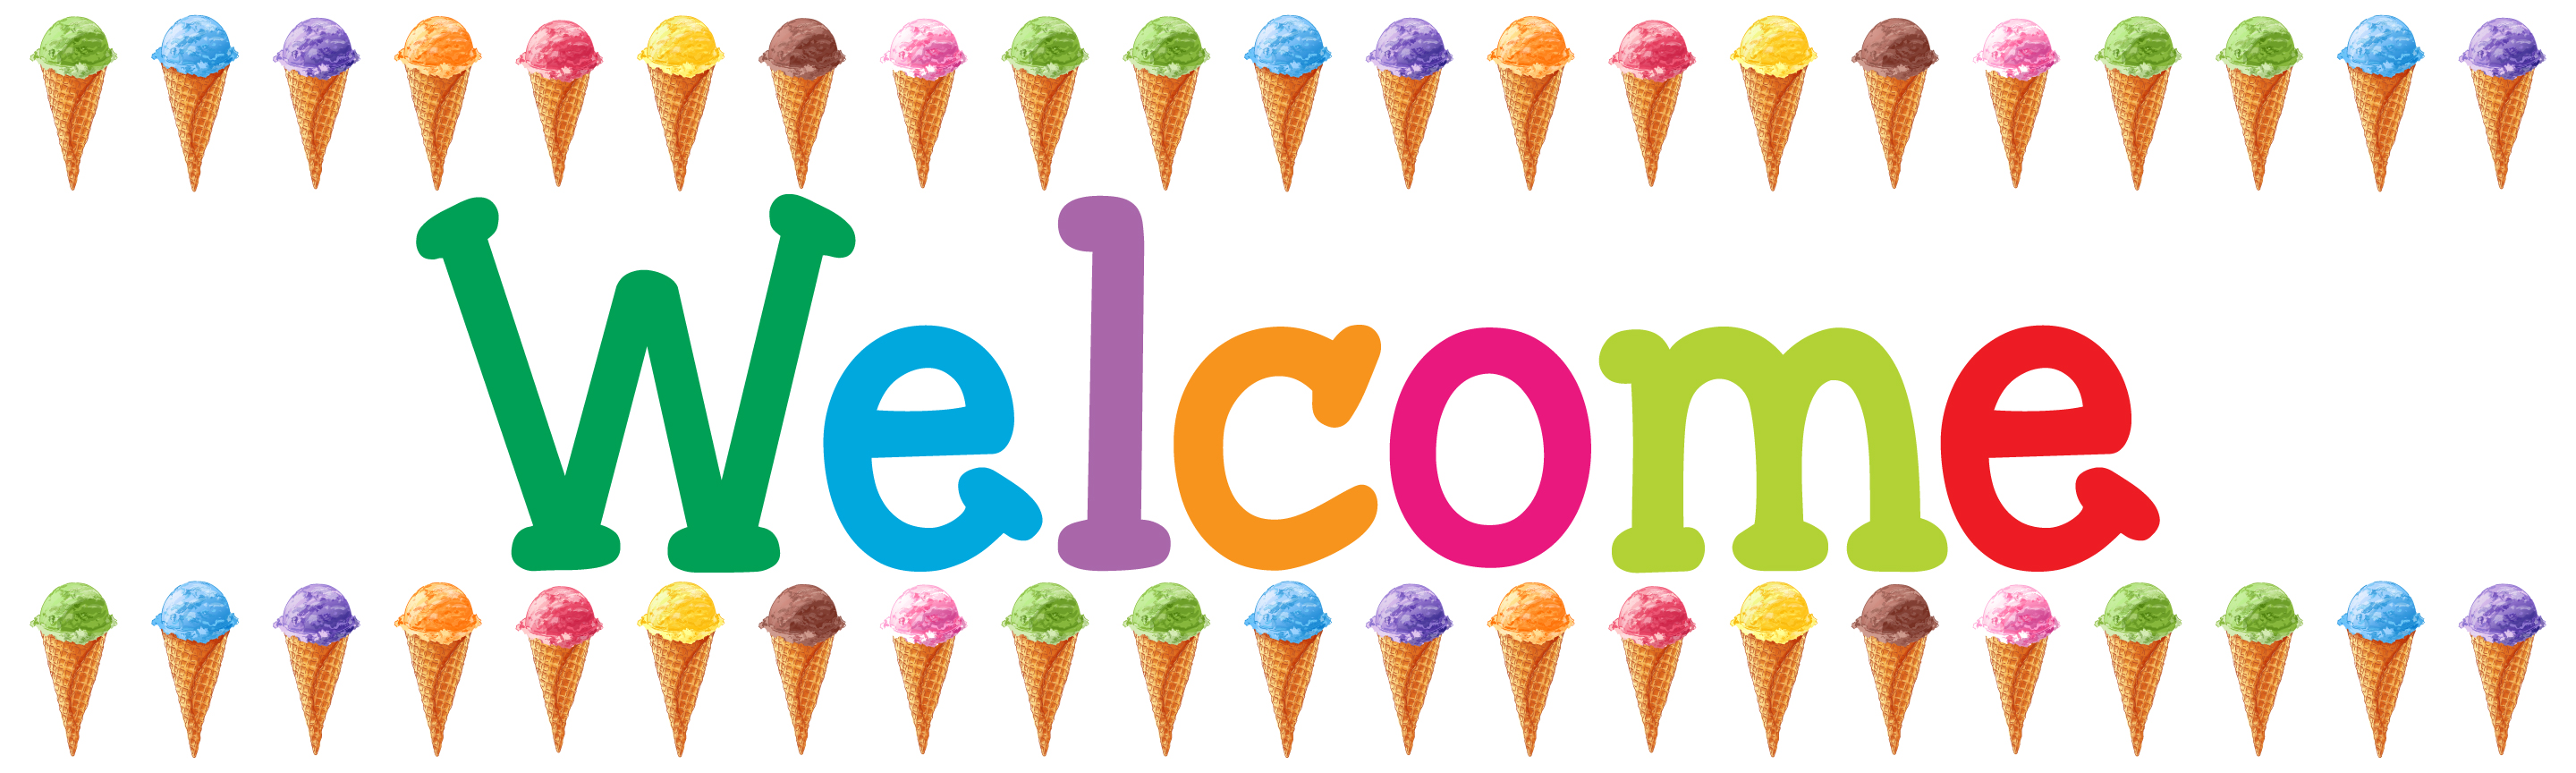 Ice cream banner clipart clipart freeuse stock Ice Cream Cones Welcome Banner clipart freeuse stock